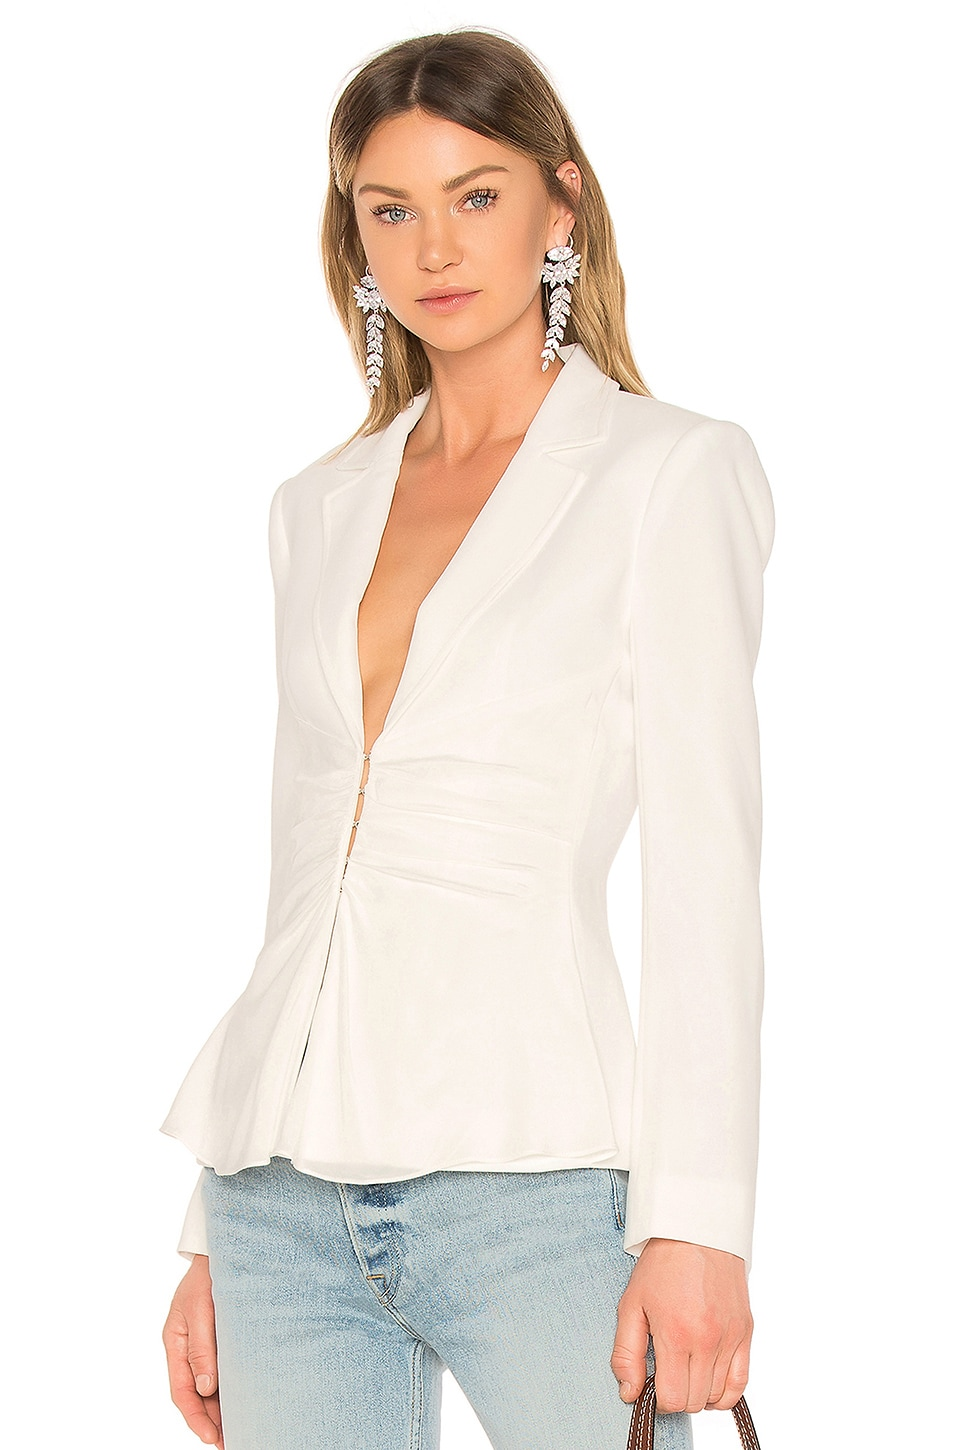 Cinq a Sept Nuri Jacket in Ivory